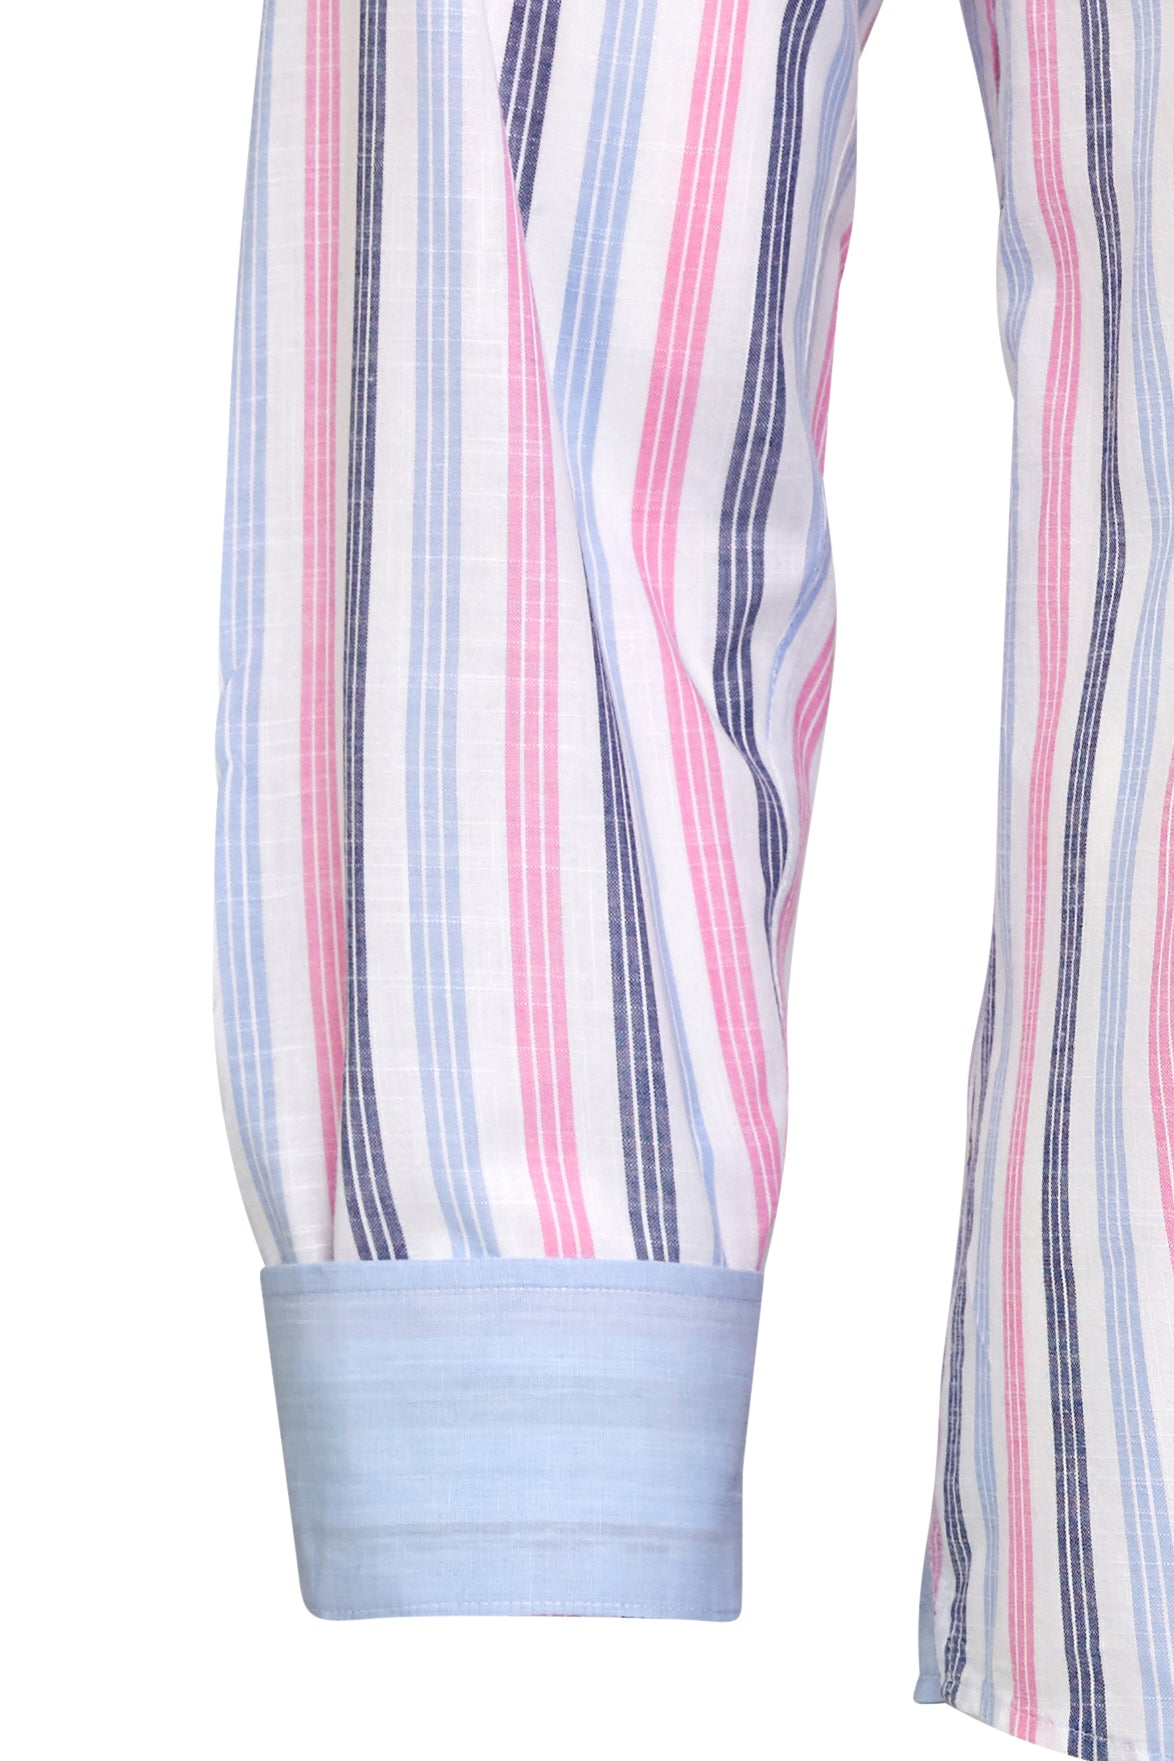 Pink n' Blue Stripe Dress Shirt